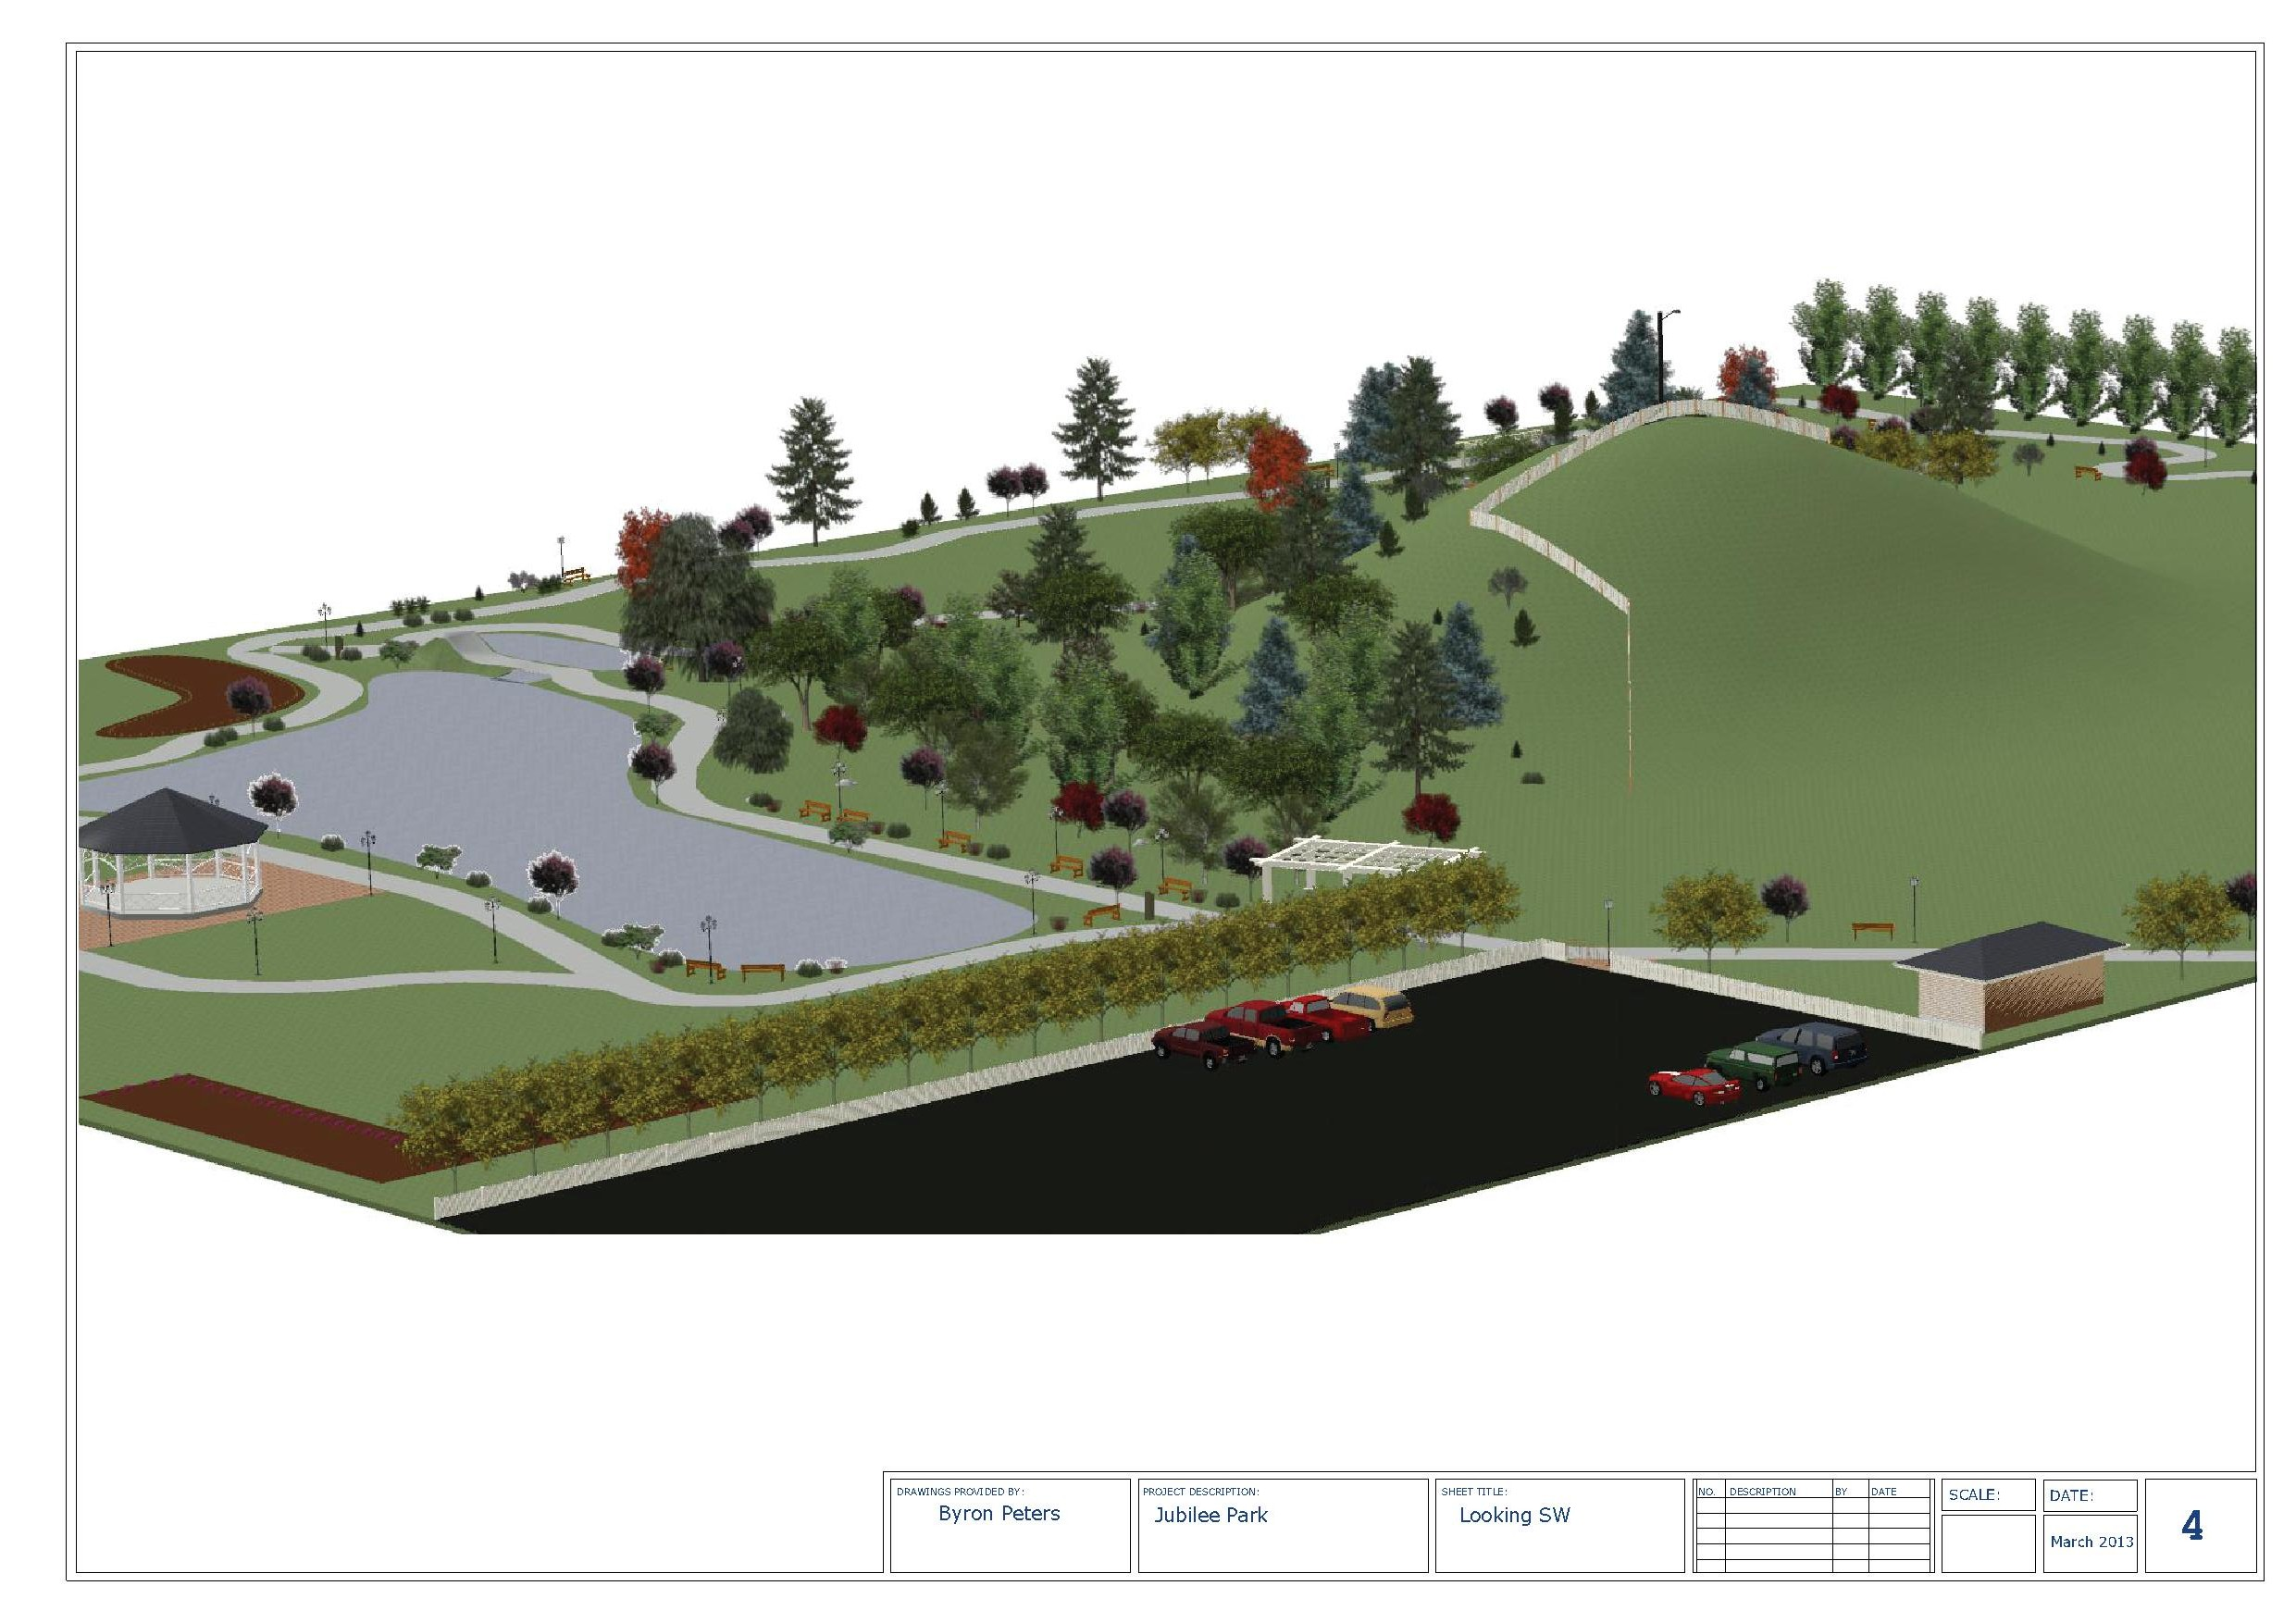 Jubilee Park Proposed Layout Image 2